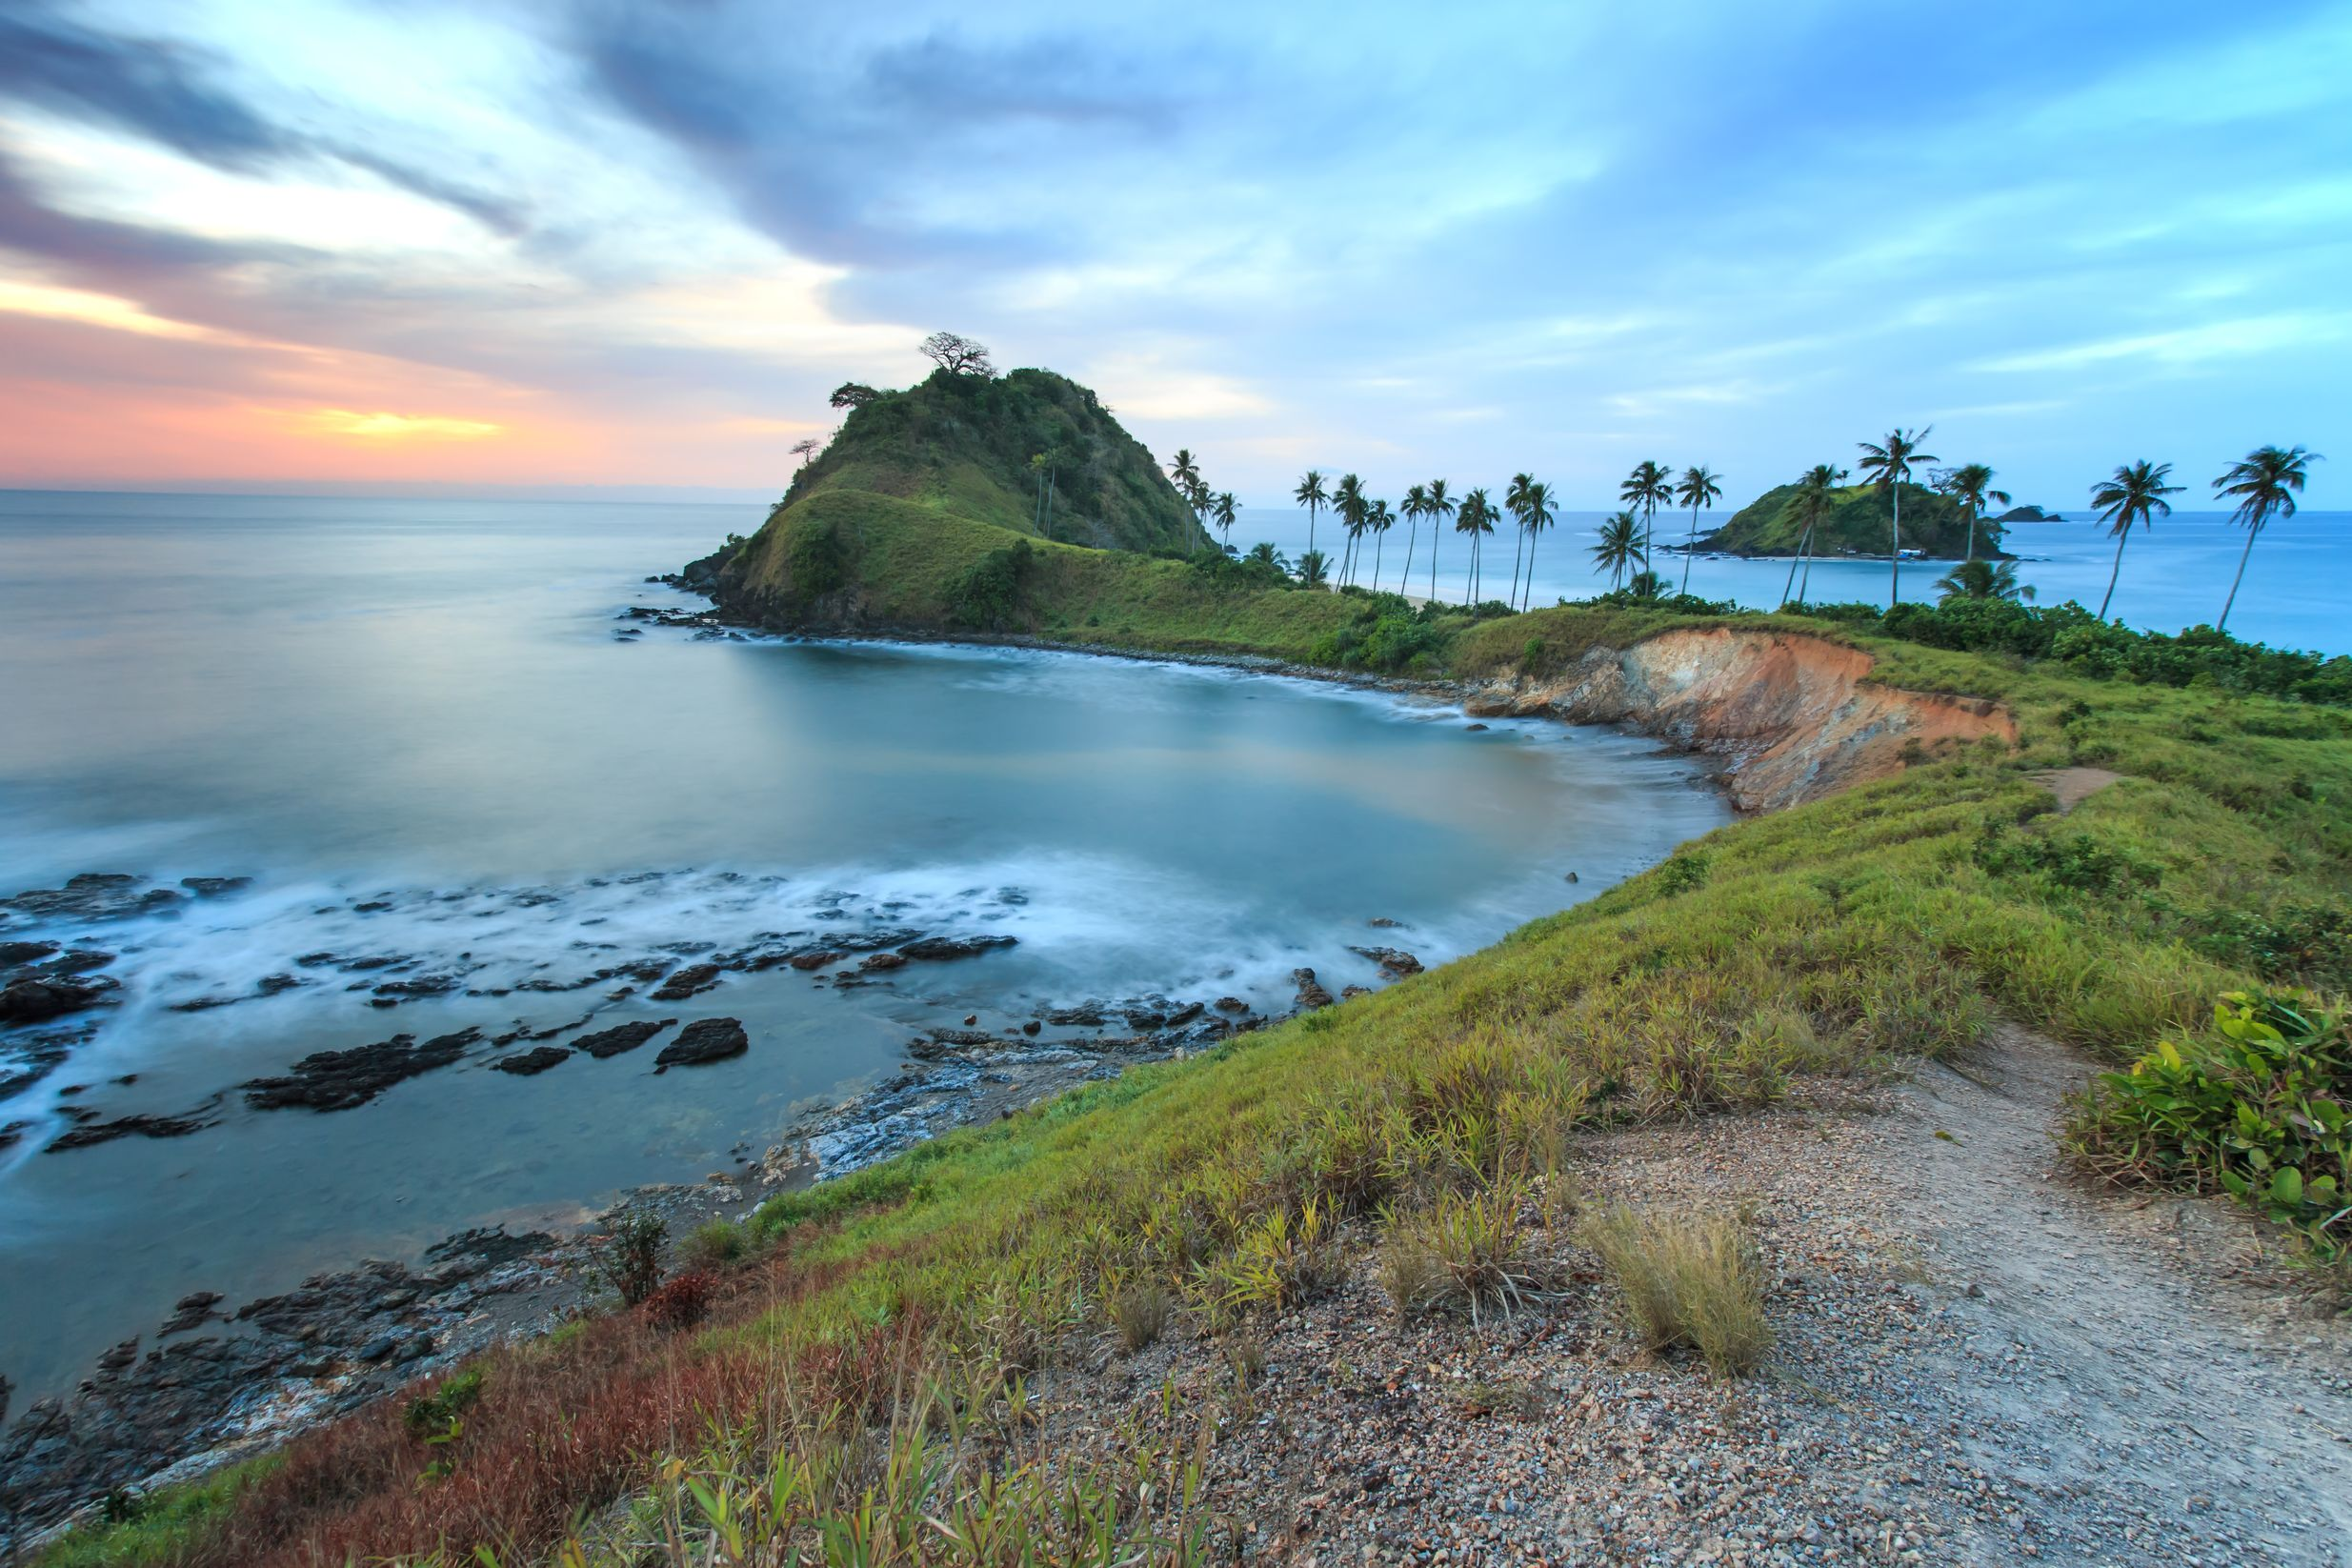 10 best places to visit in the Philippines for singles